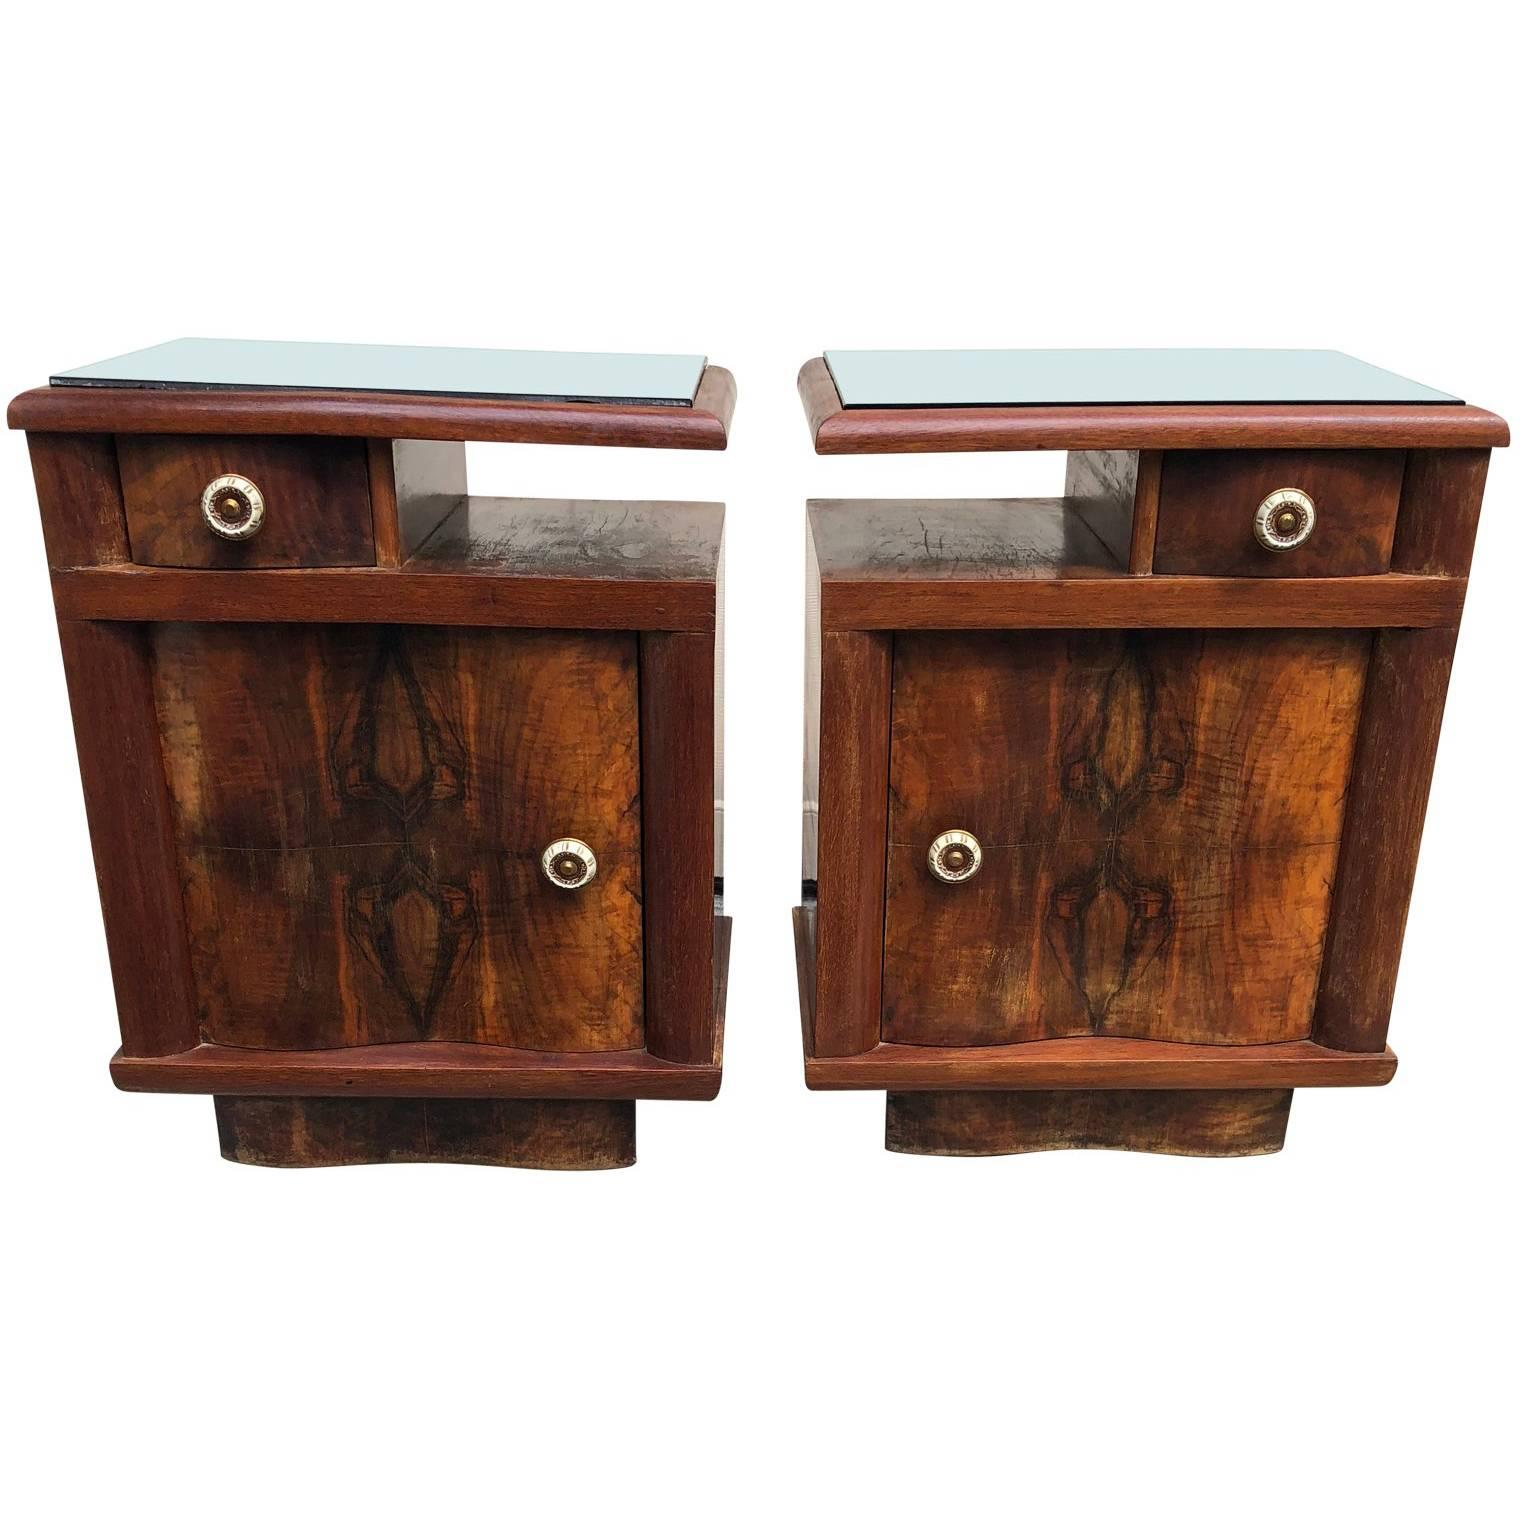 Pair Of Italian Art Deco Bed Side Tables Or End Tables